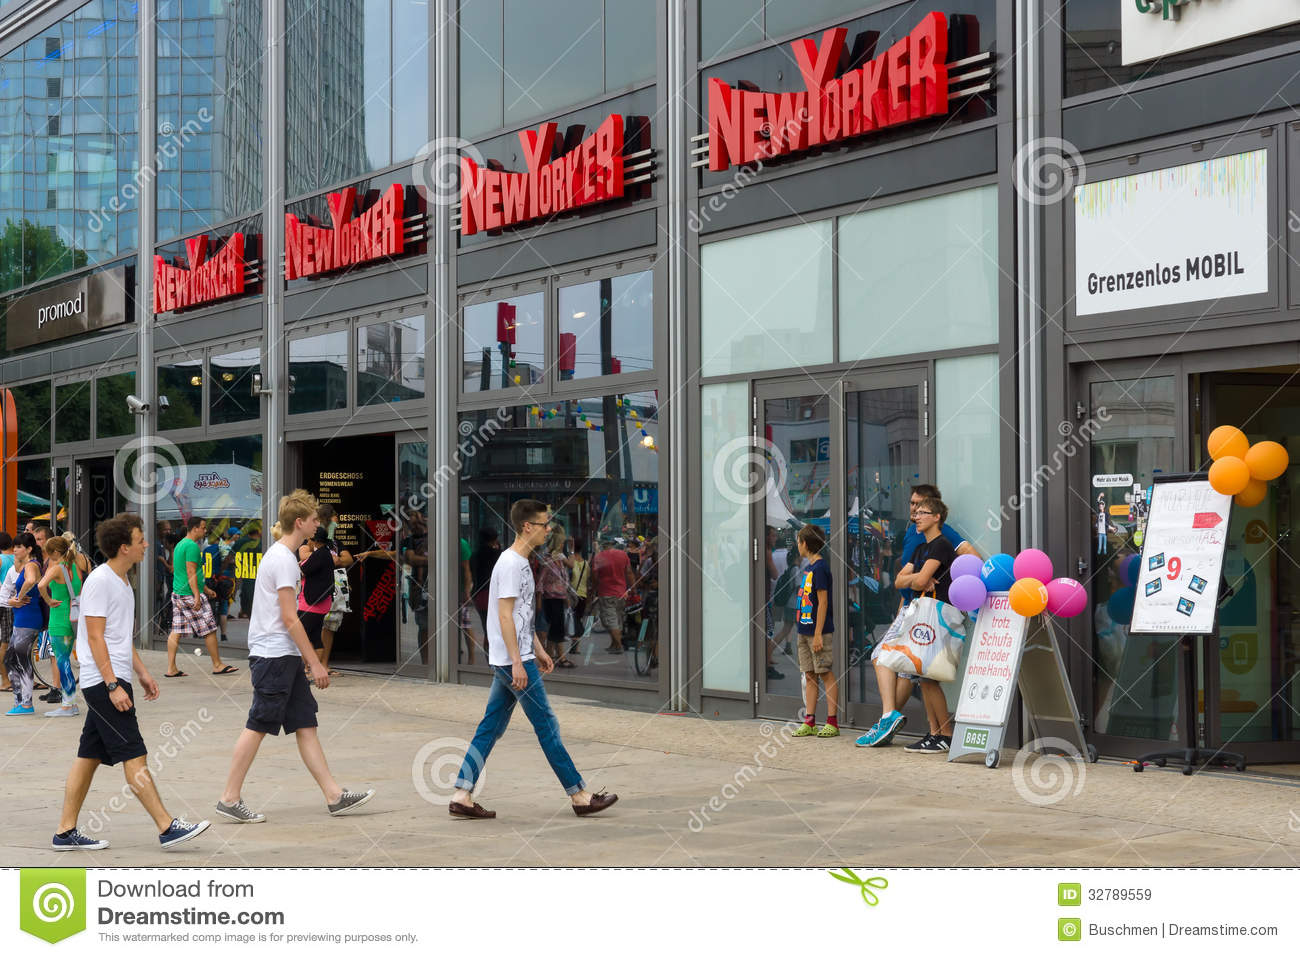 New Yorker Fashion Stores In Berlin